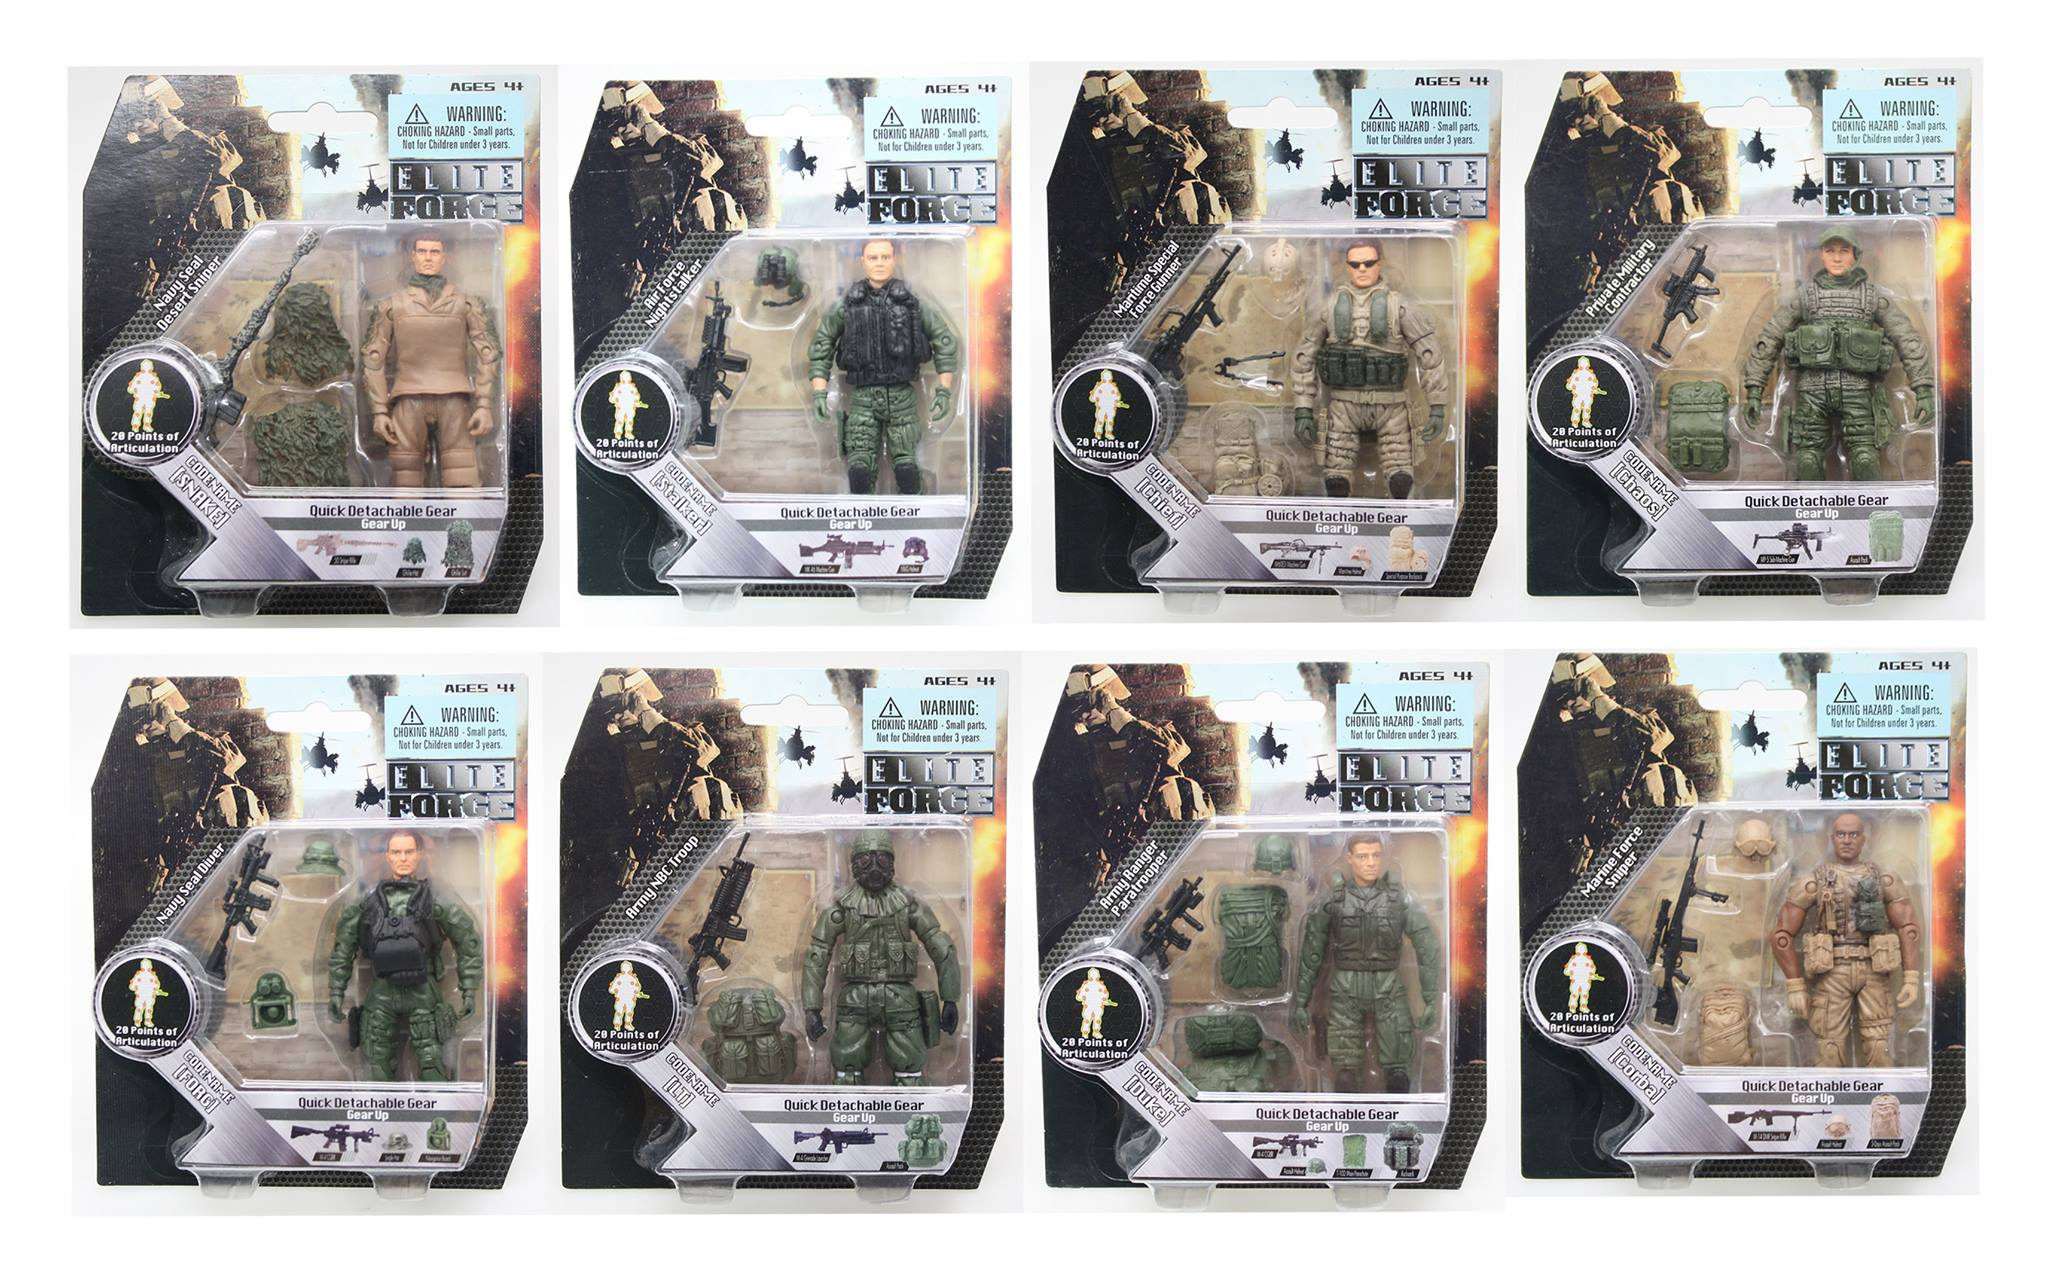 Elite Force 1 18 Toy : Breaking bbi elite force new release the fighting th